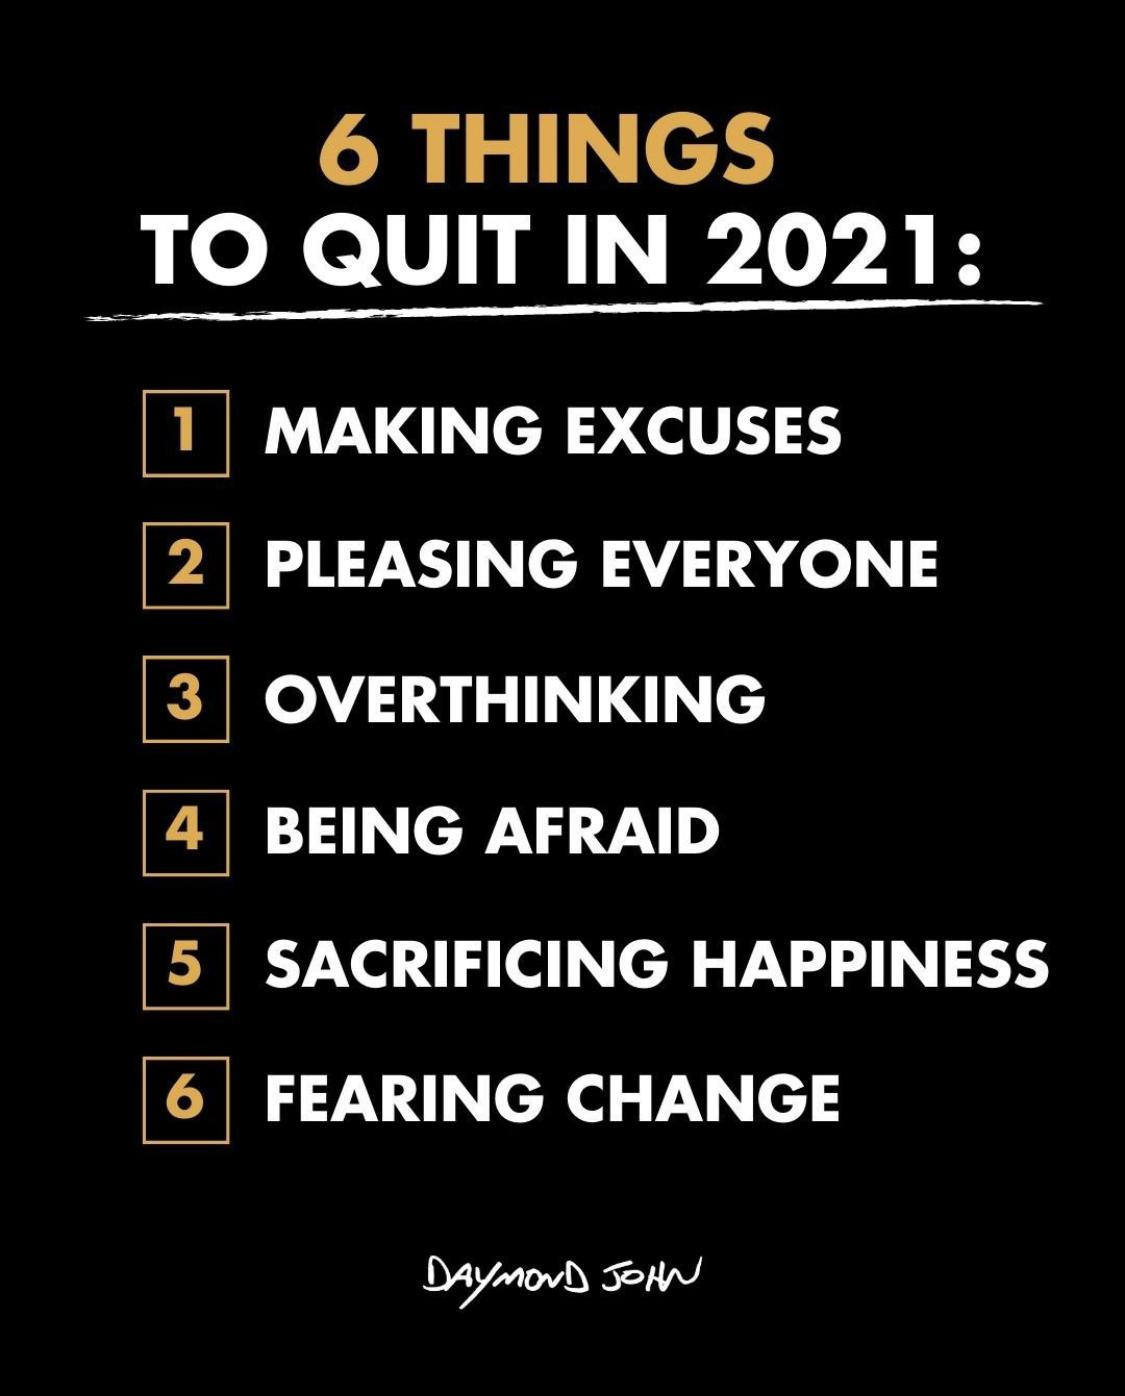 [Image] 6 Things to Quit